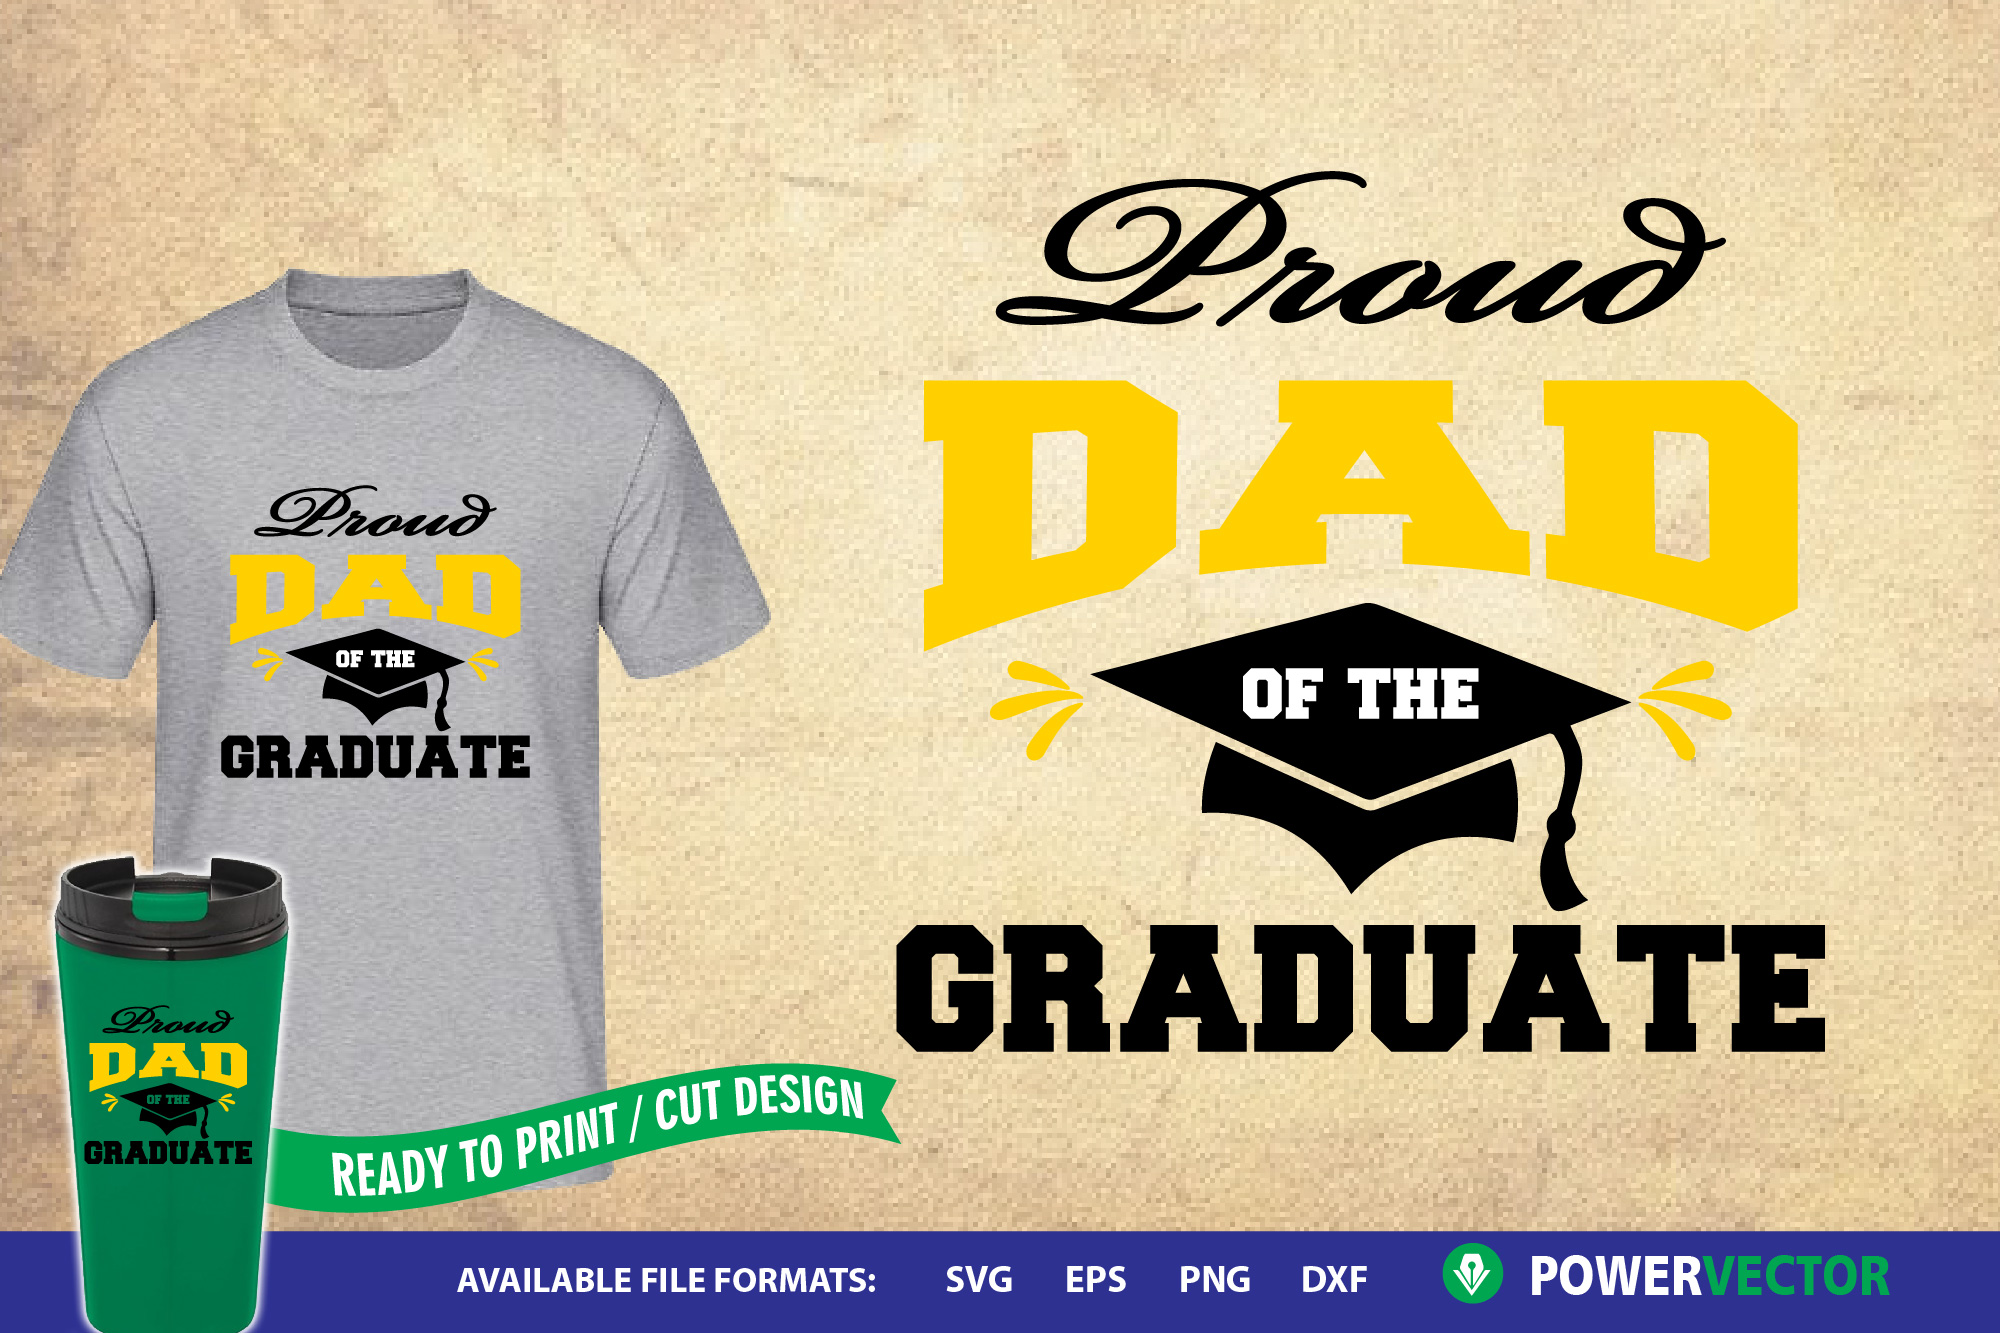 Download Free Proud Dad Of The Graduate Graphic By Powervector Creative Fabrica for Cricut Explore, Silhouette and other cutting machines.